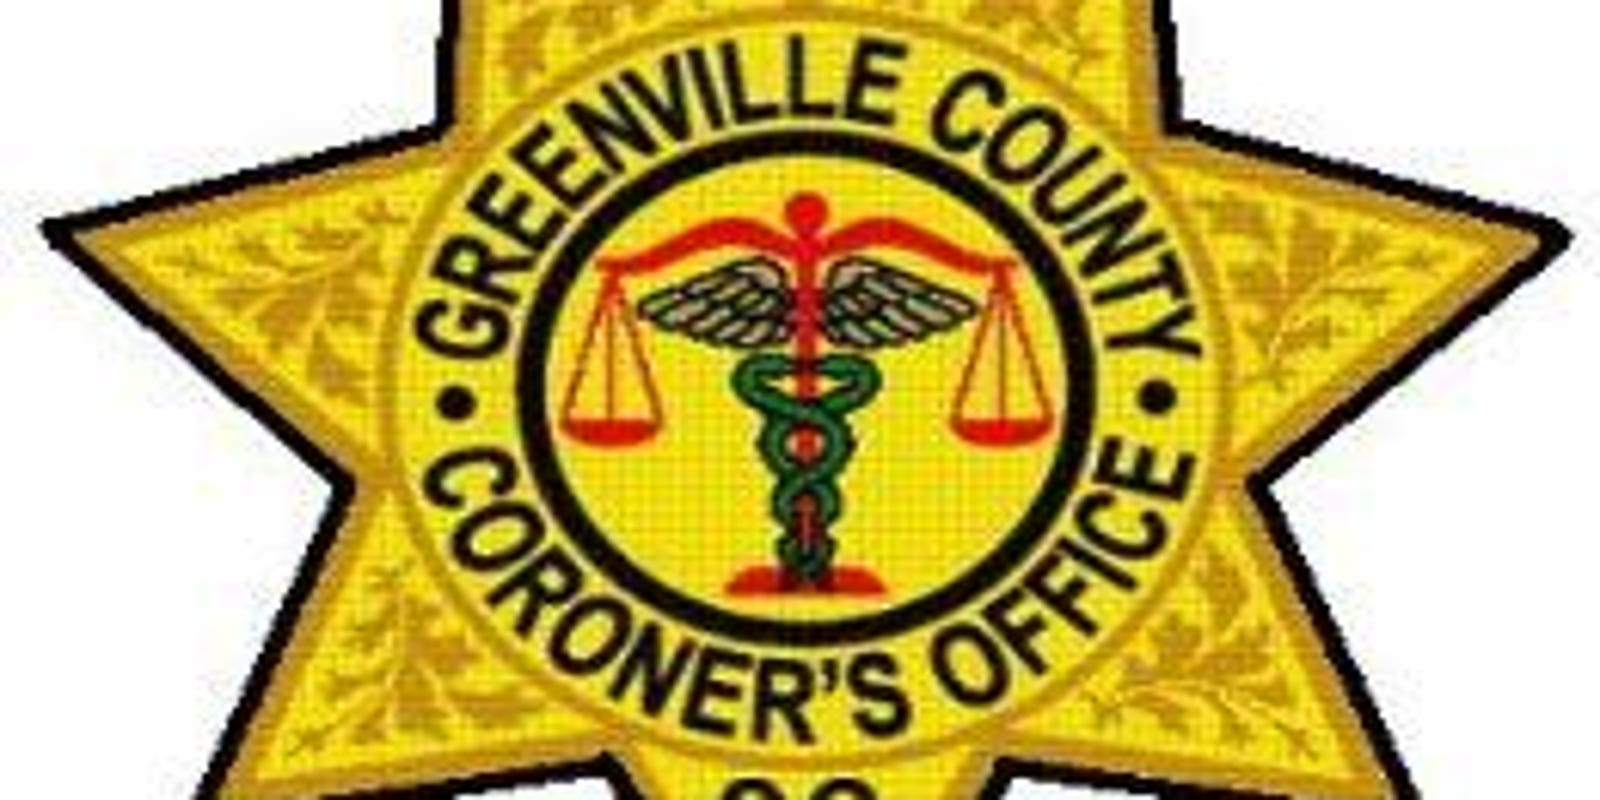 2 people killed overnight in Greenville when struck by cars while walking on dark roads